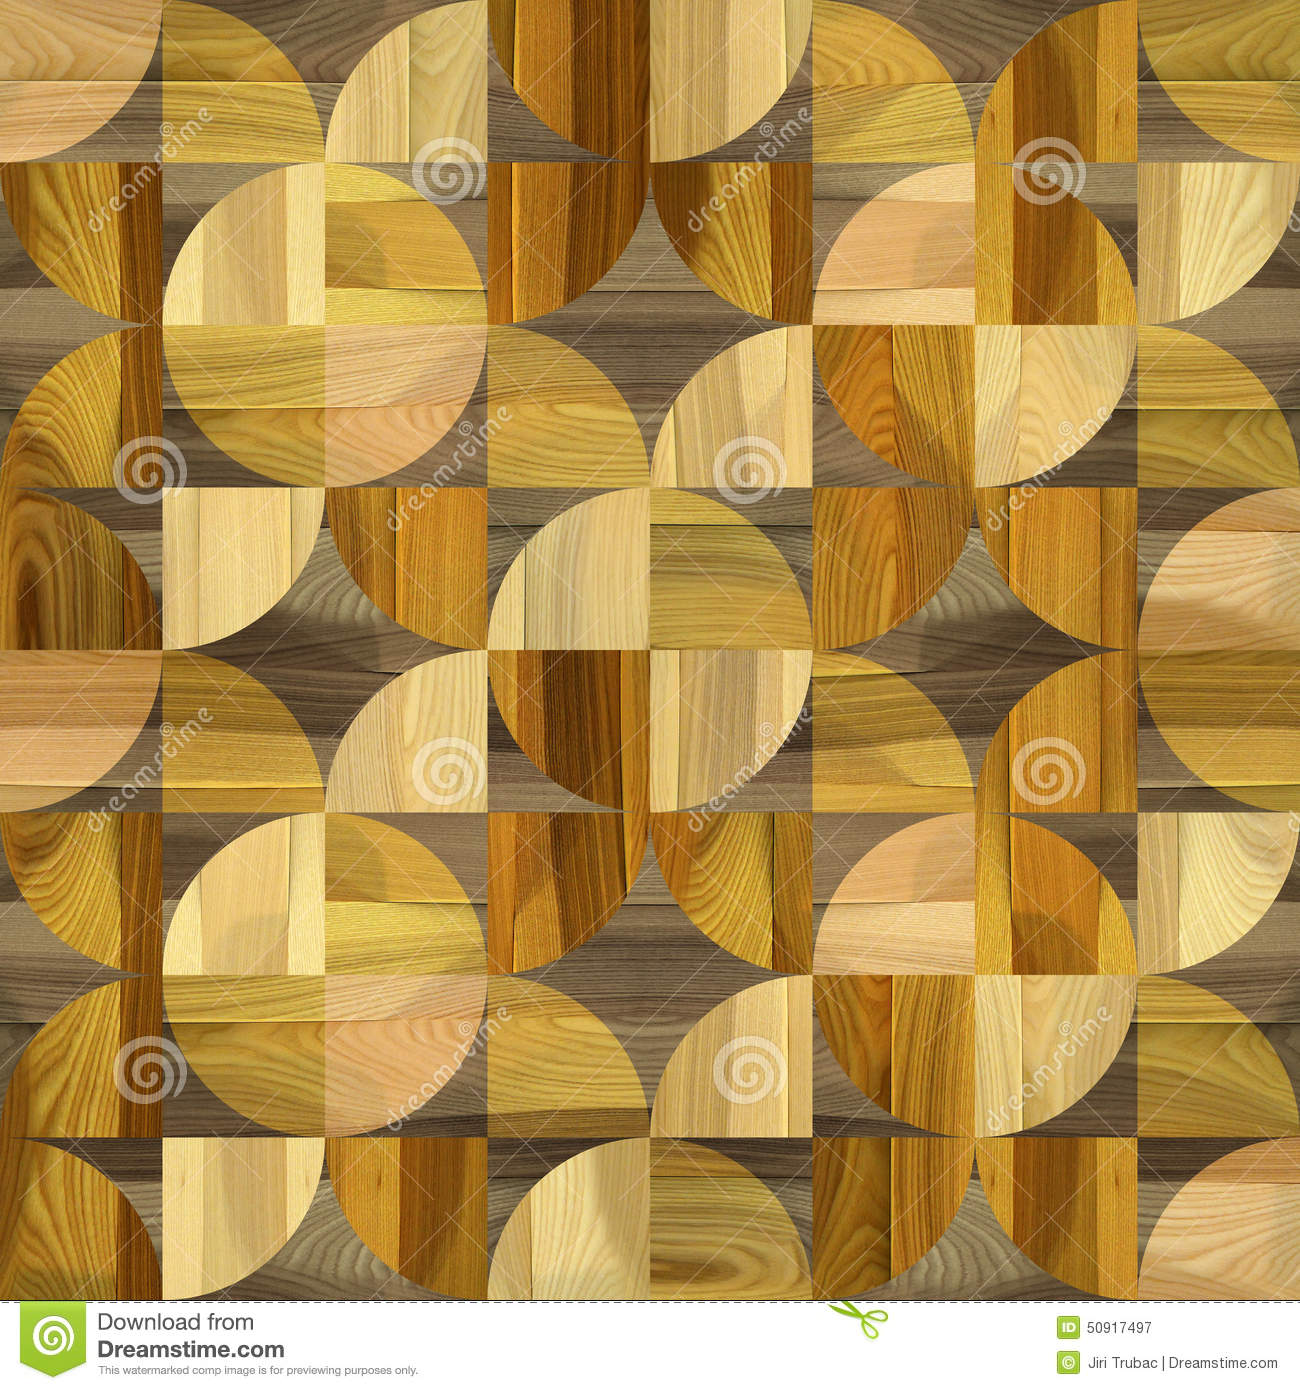 Abstract Paneling Pattern - Seamless Background - Laminate Floor ...